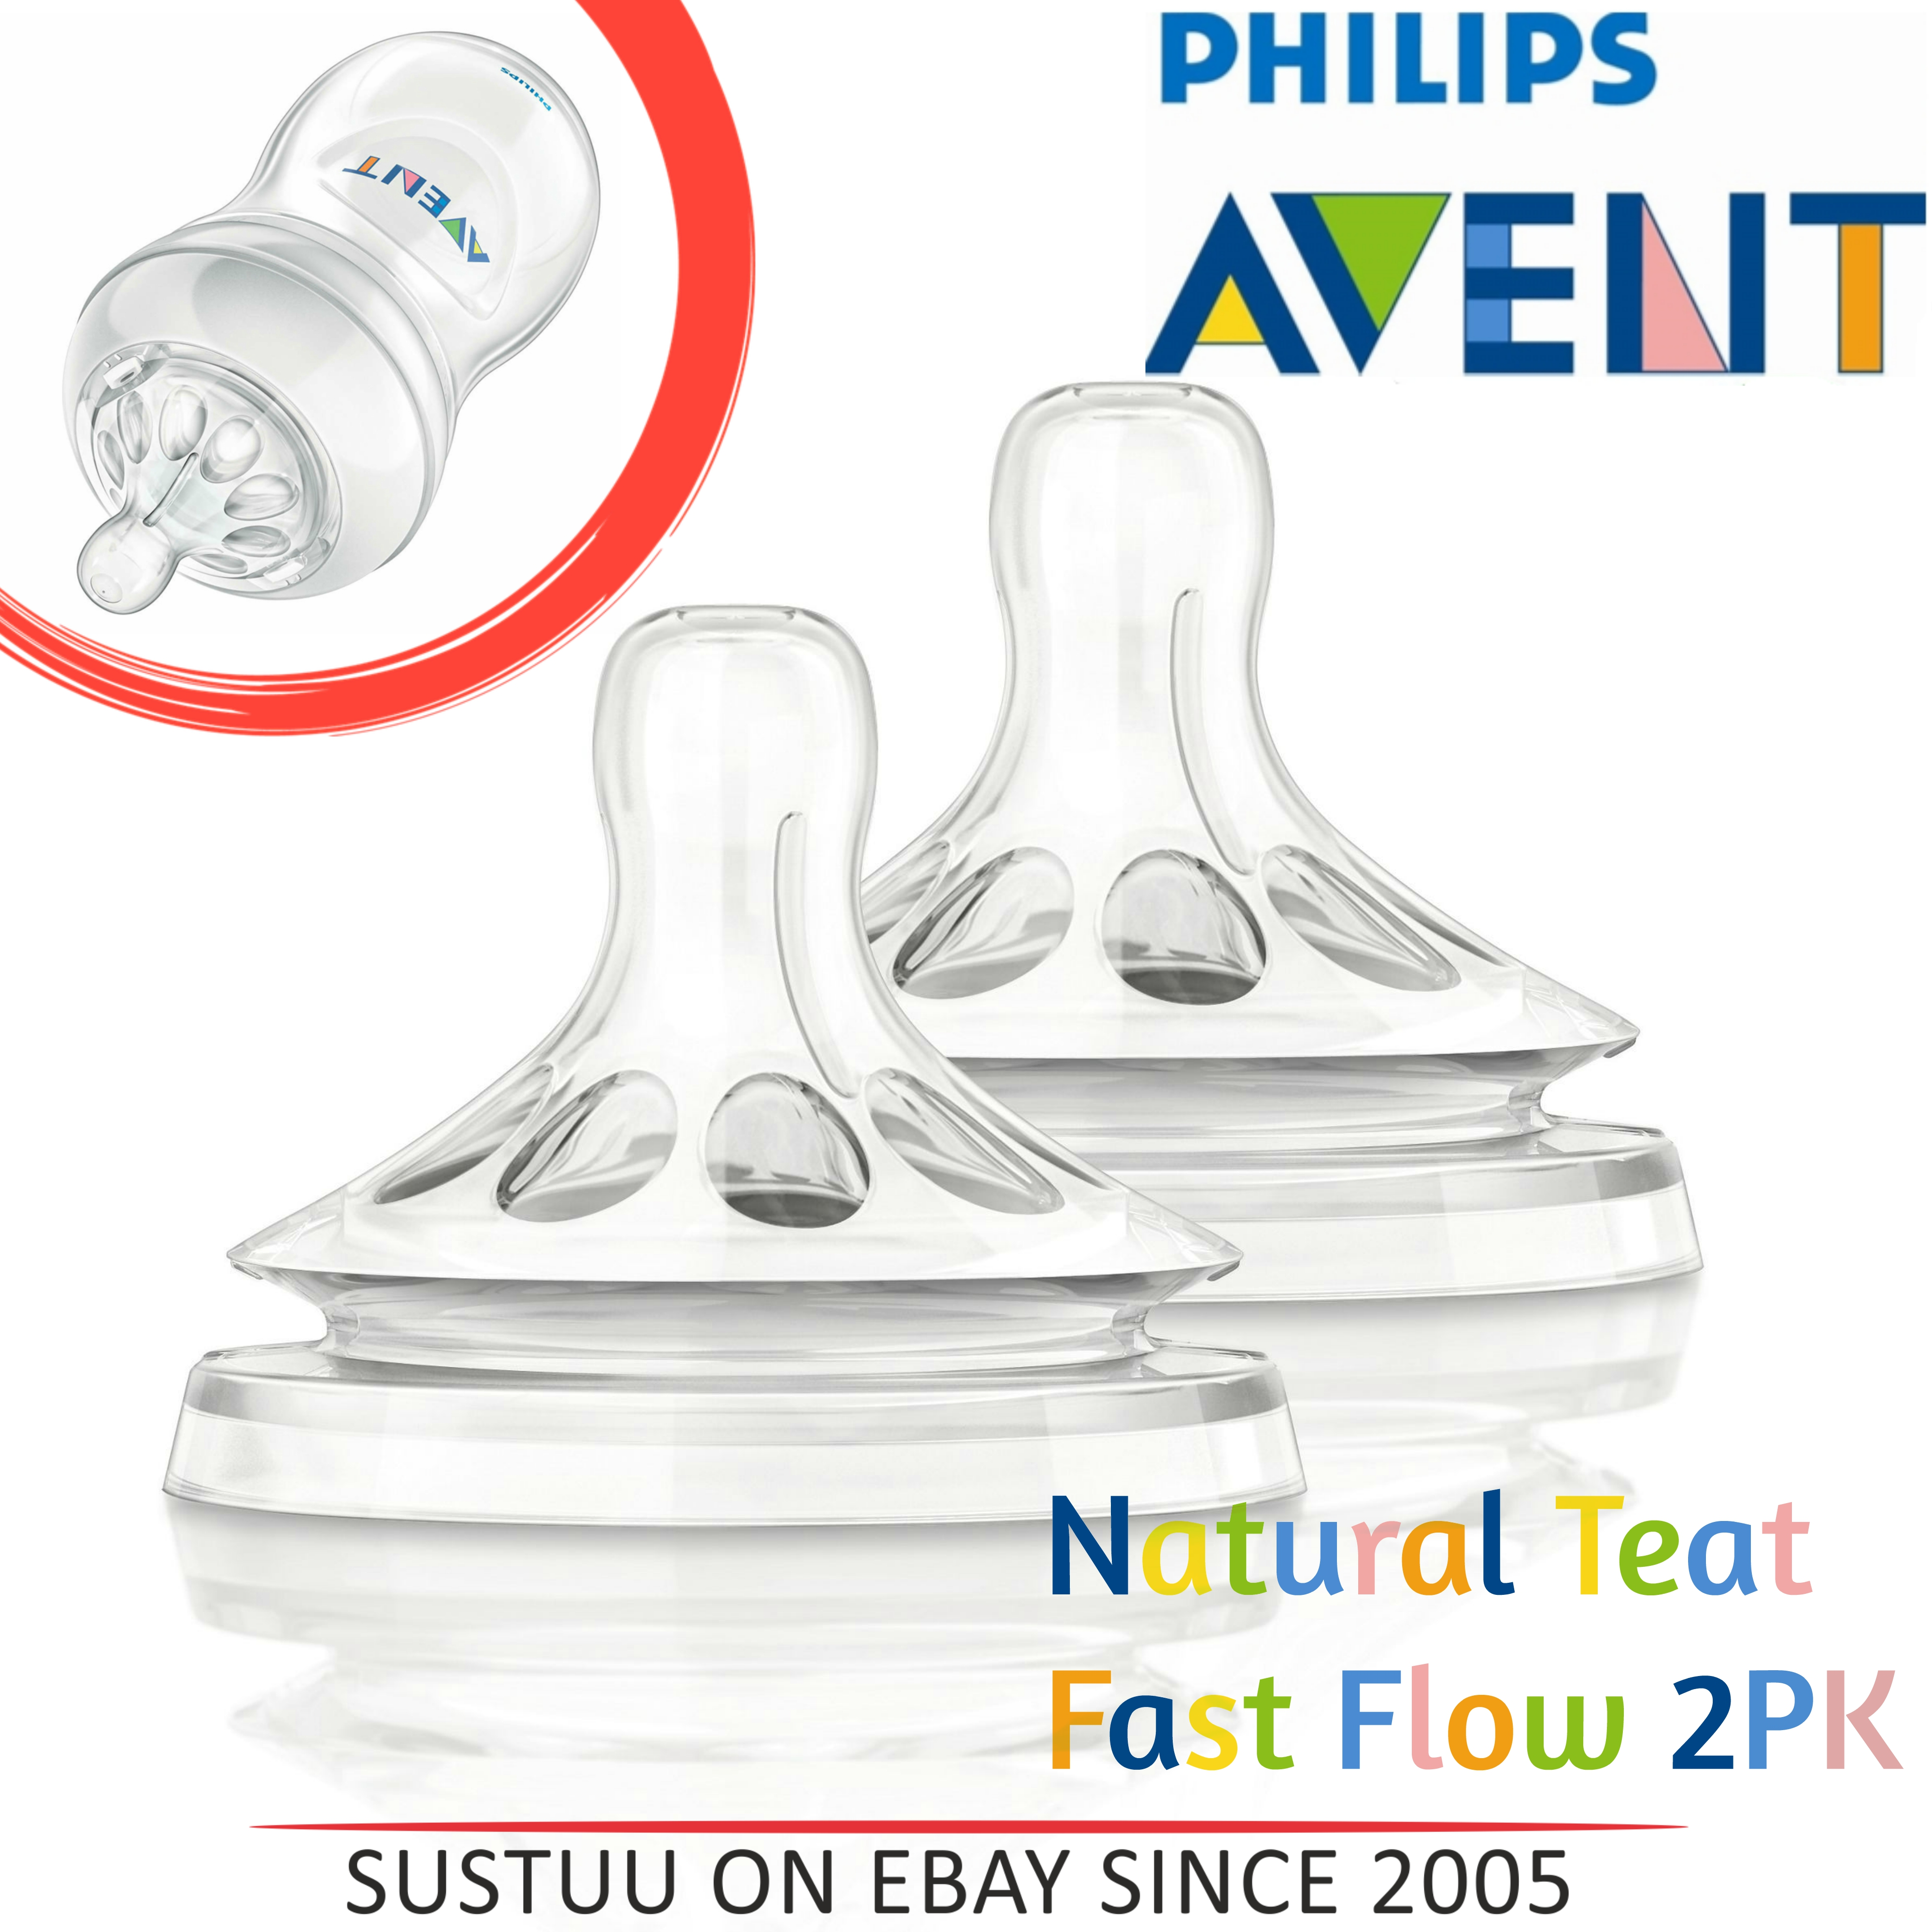 Philips Avent Baby Natural Teat Fast Flow|BPA Free|Twin Valve Design|Anti Colic